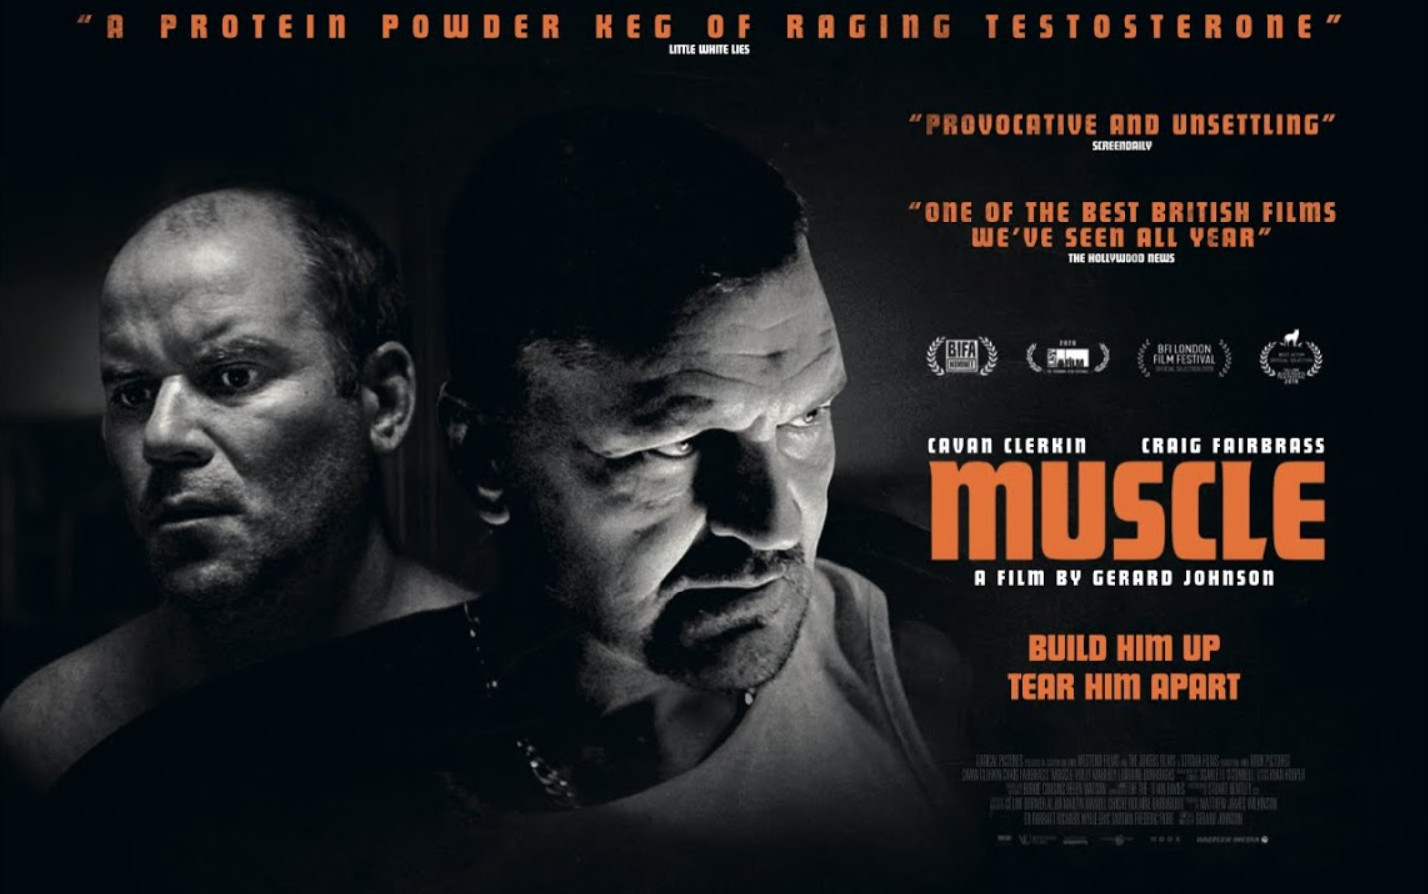 Muscle film